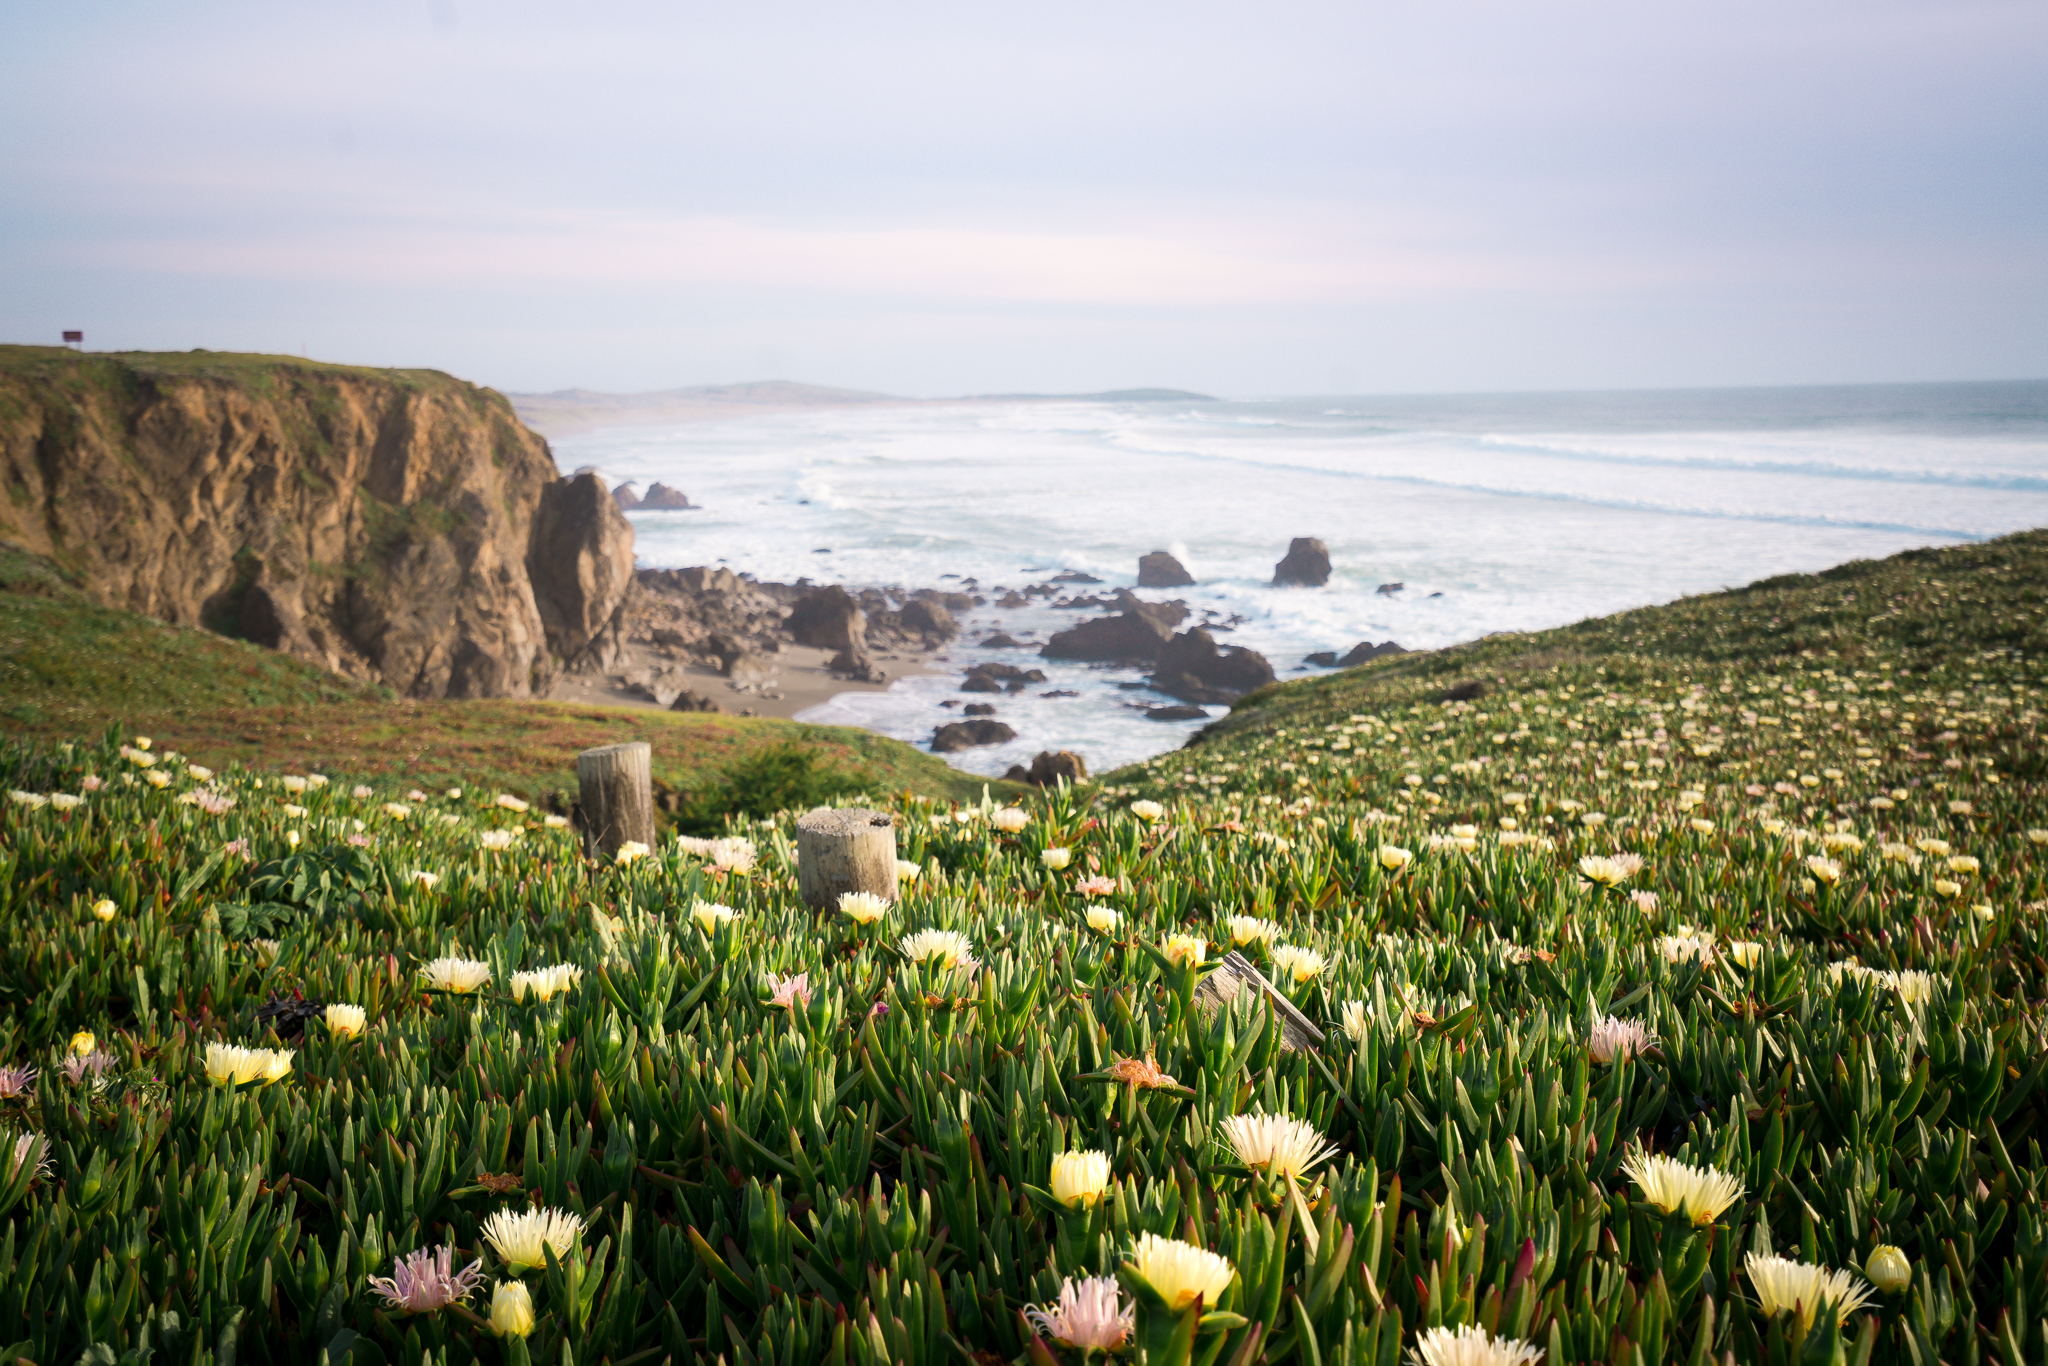 Views from the road along Sonoma Coast State Park.